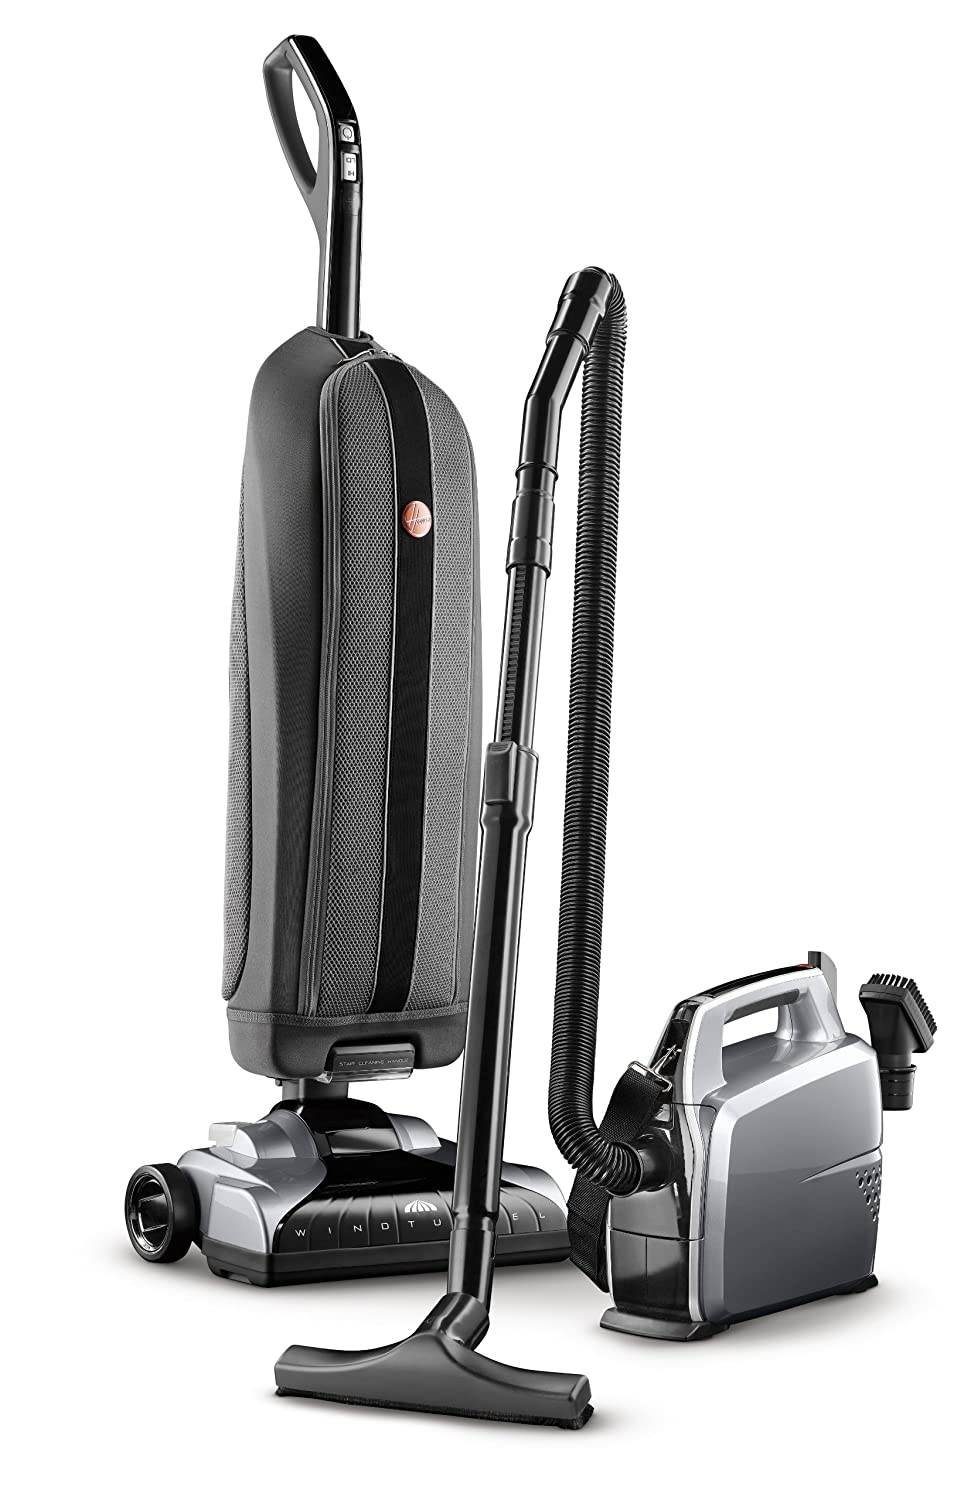 Best vacuum cleaners for that pesky pet hair hoover platinum lightweight upright vacuum with canister bagged baanklon Images